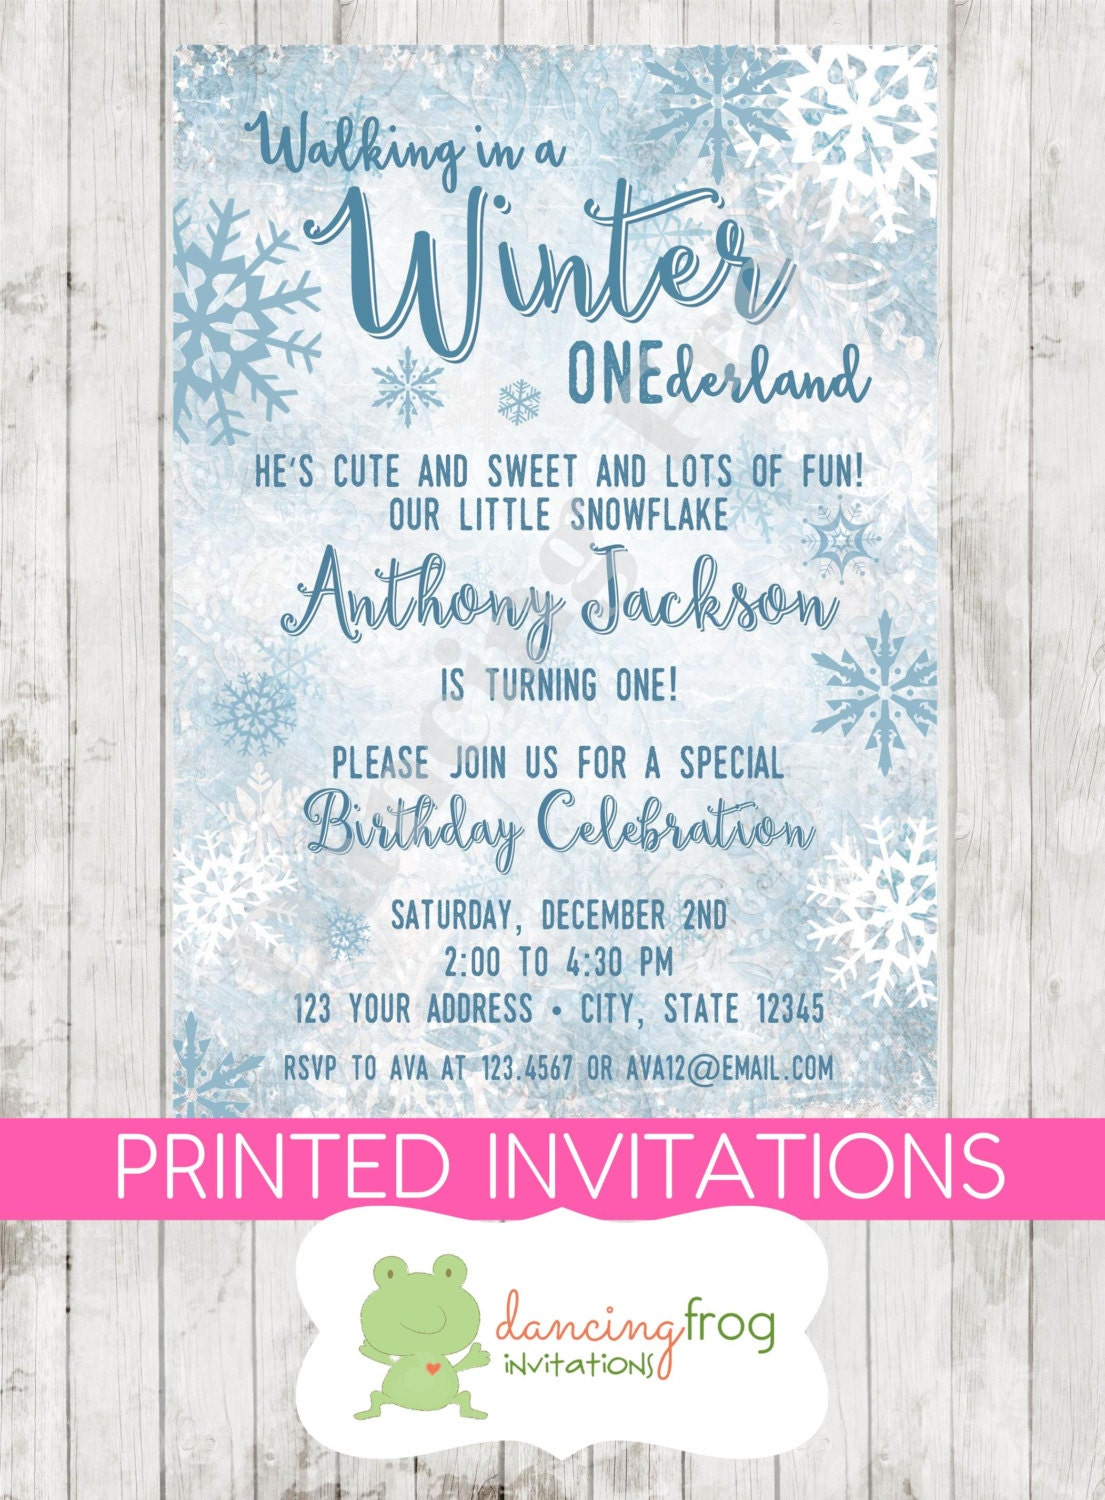 Winter Onederland Birthday Invitations for amazing invitation ideas